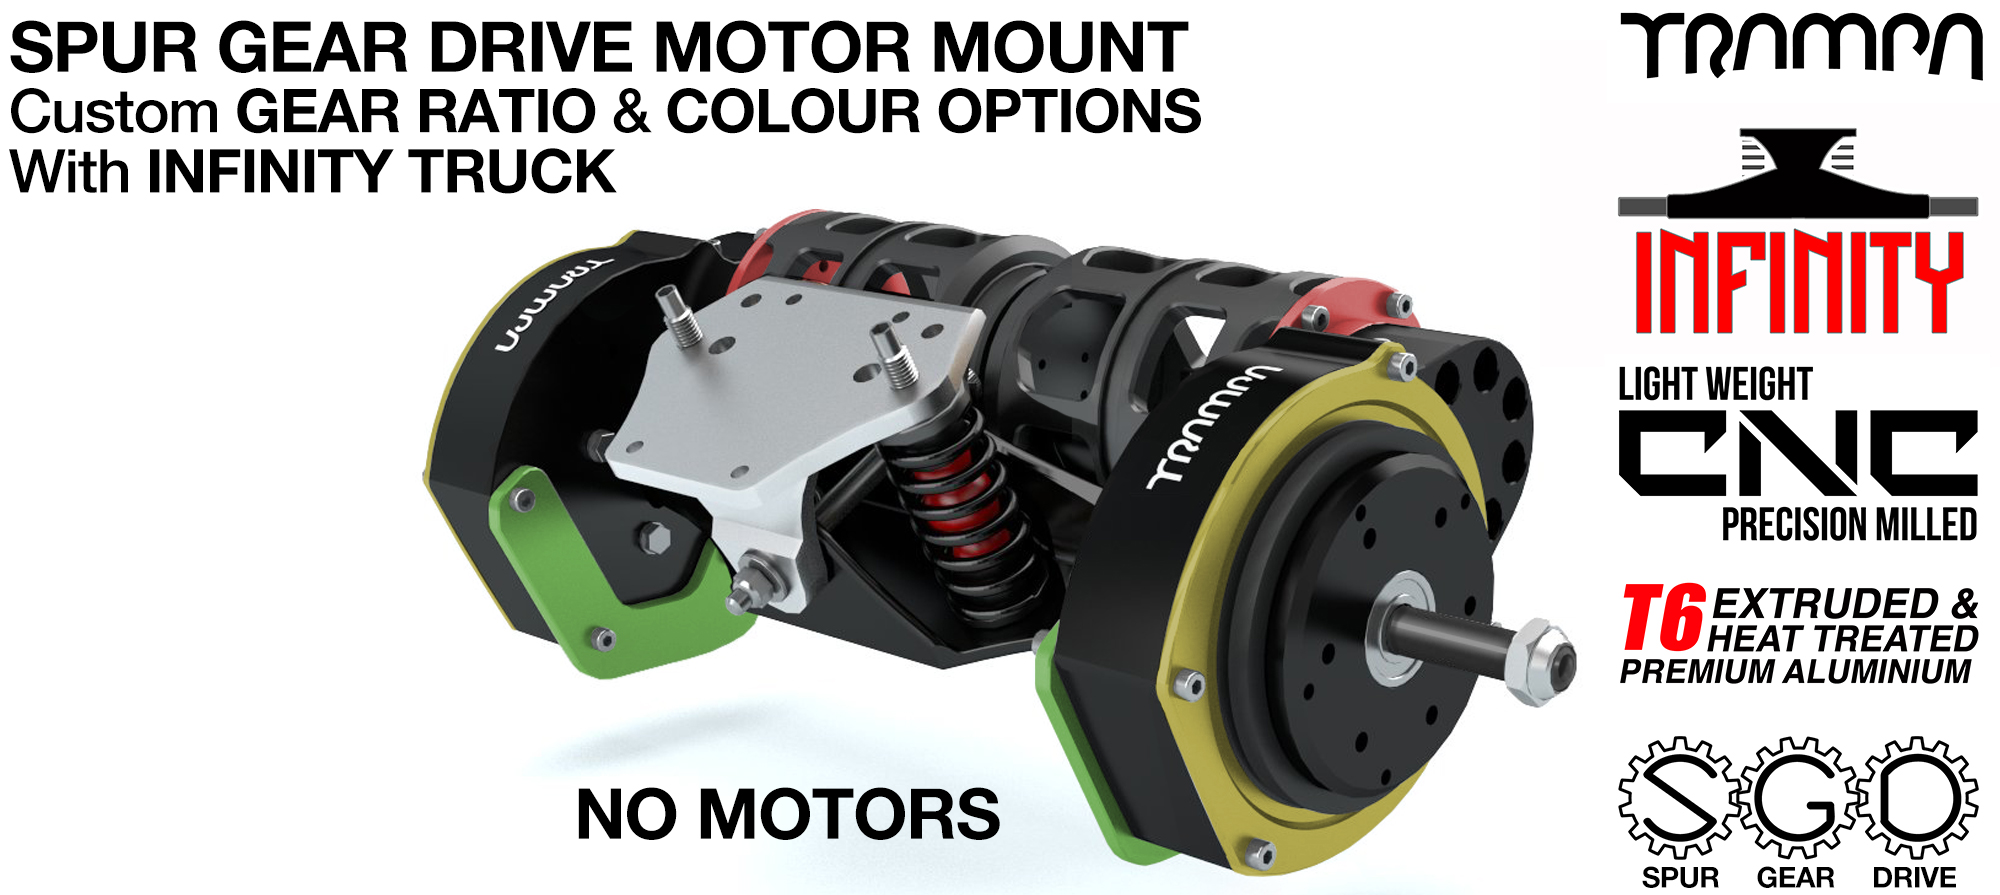 Mountainboard EXTERNAL Spur Gear Drive TWIN Motor Mounts & INFINITY TRUCK